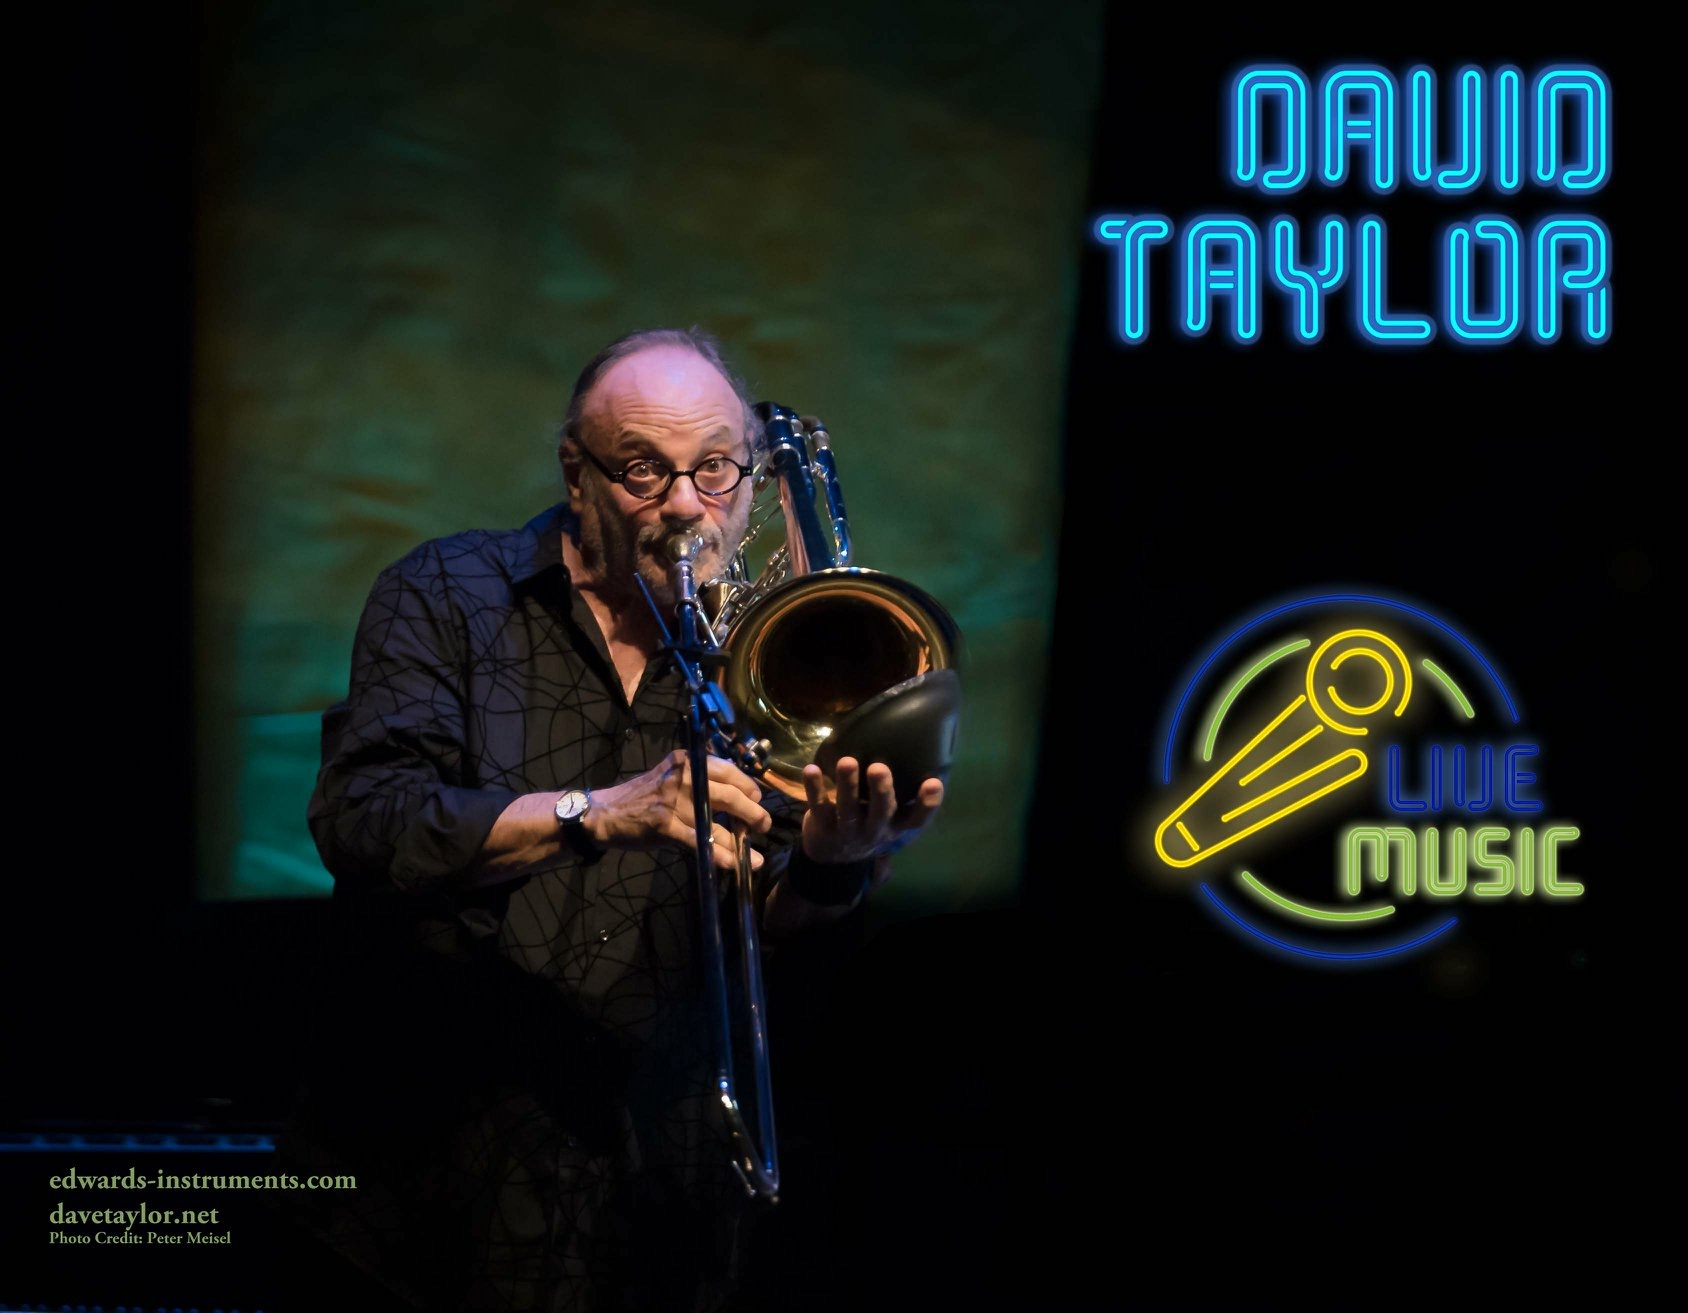 Edwards Instruments - David Taylor performs exclusively on Edwards Instruments, and has a line of custom mouthpieces.